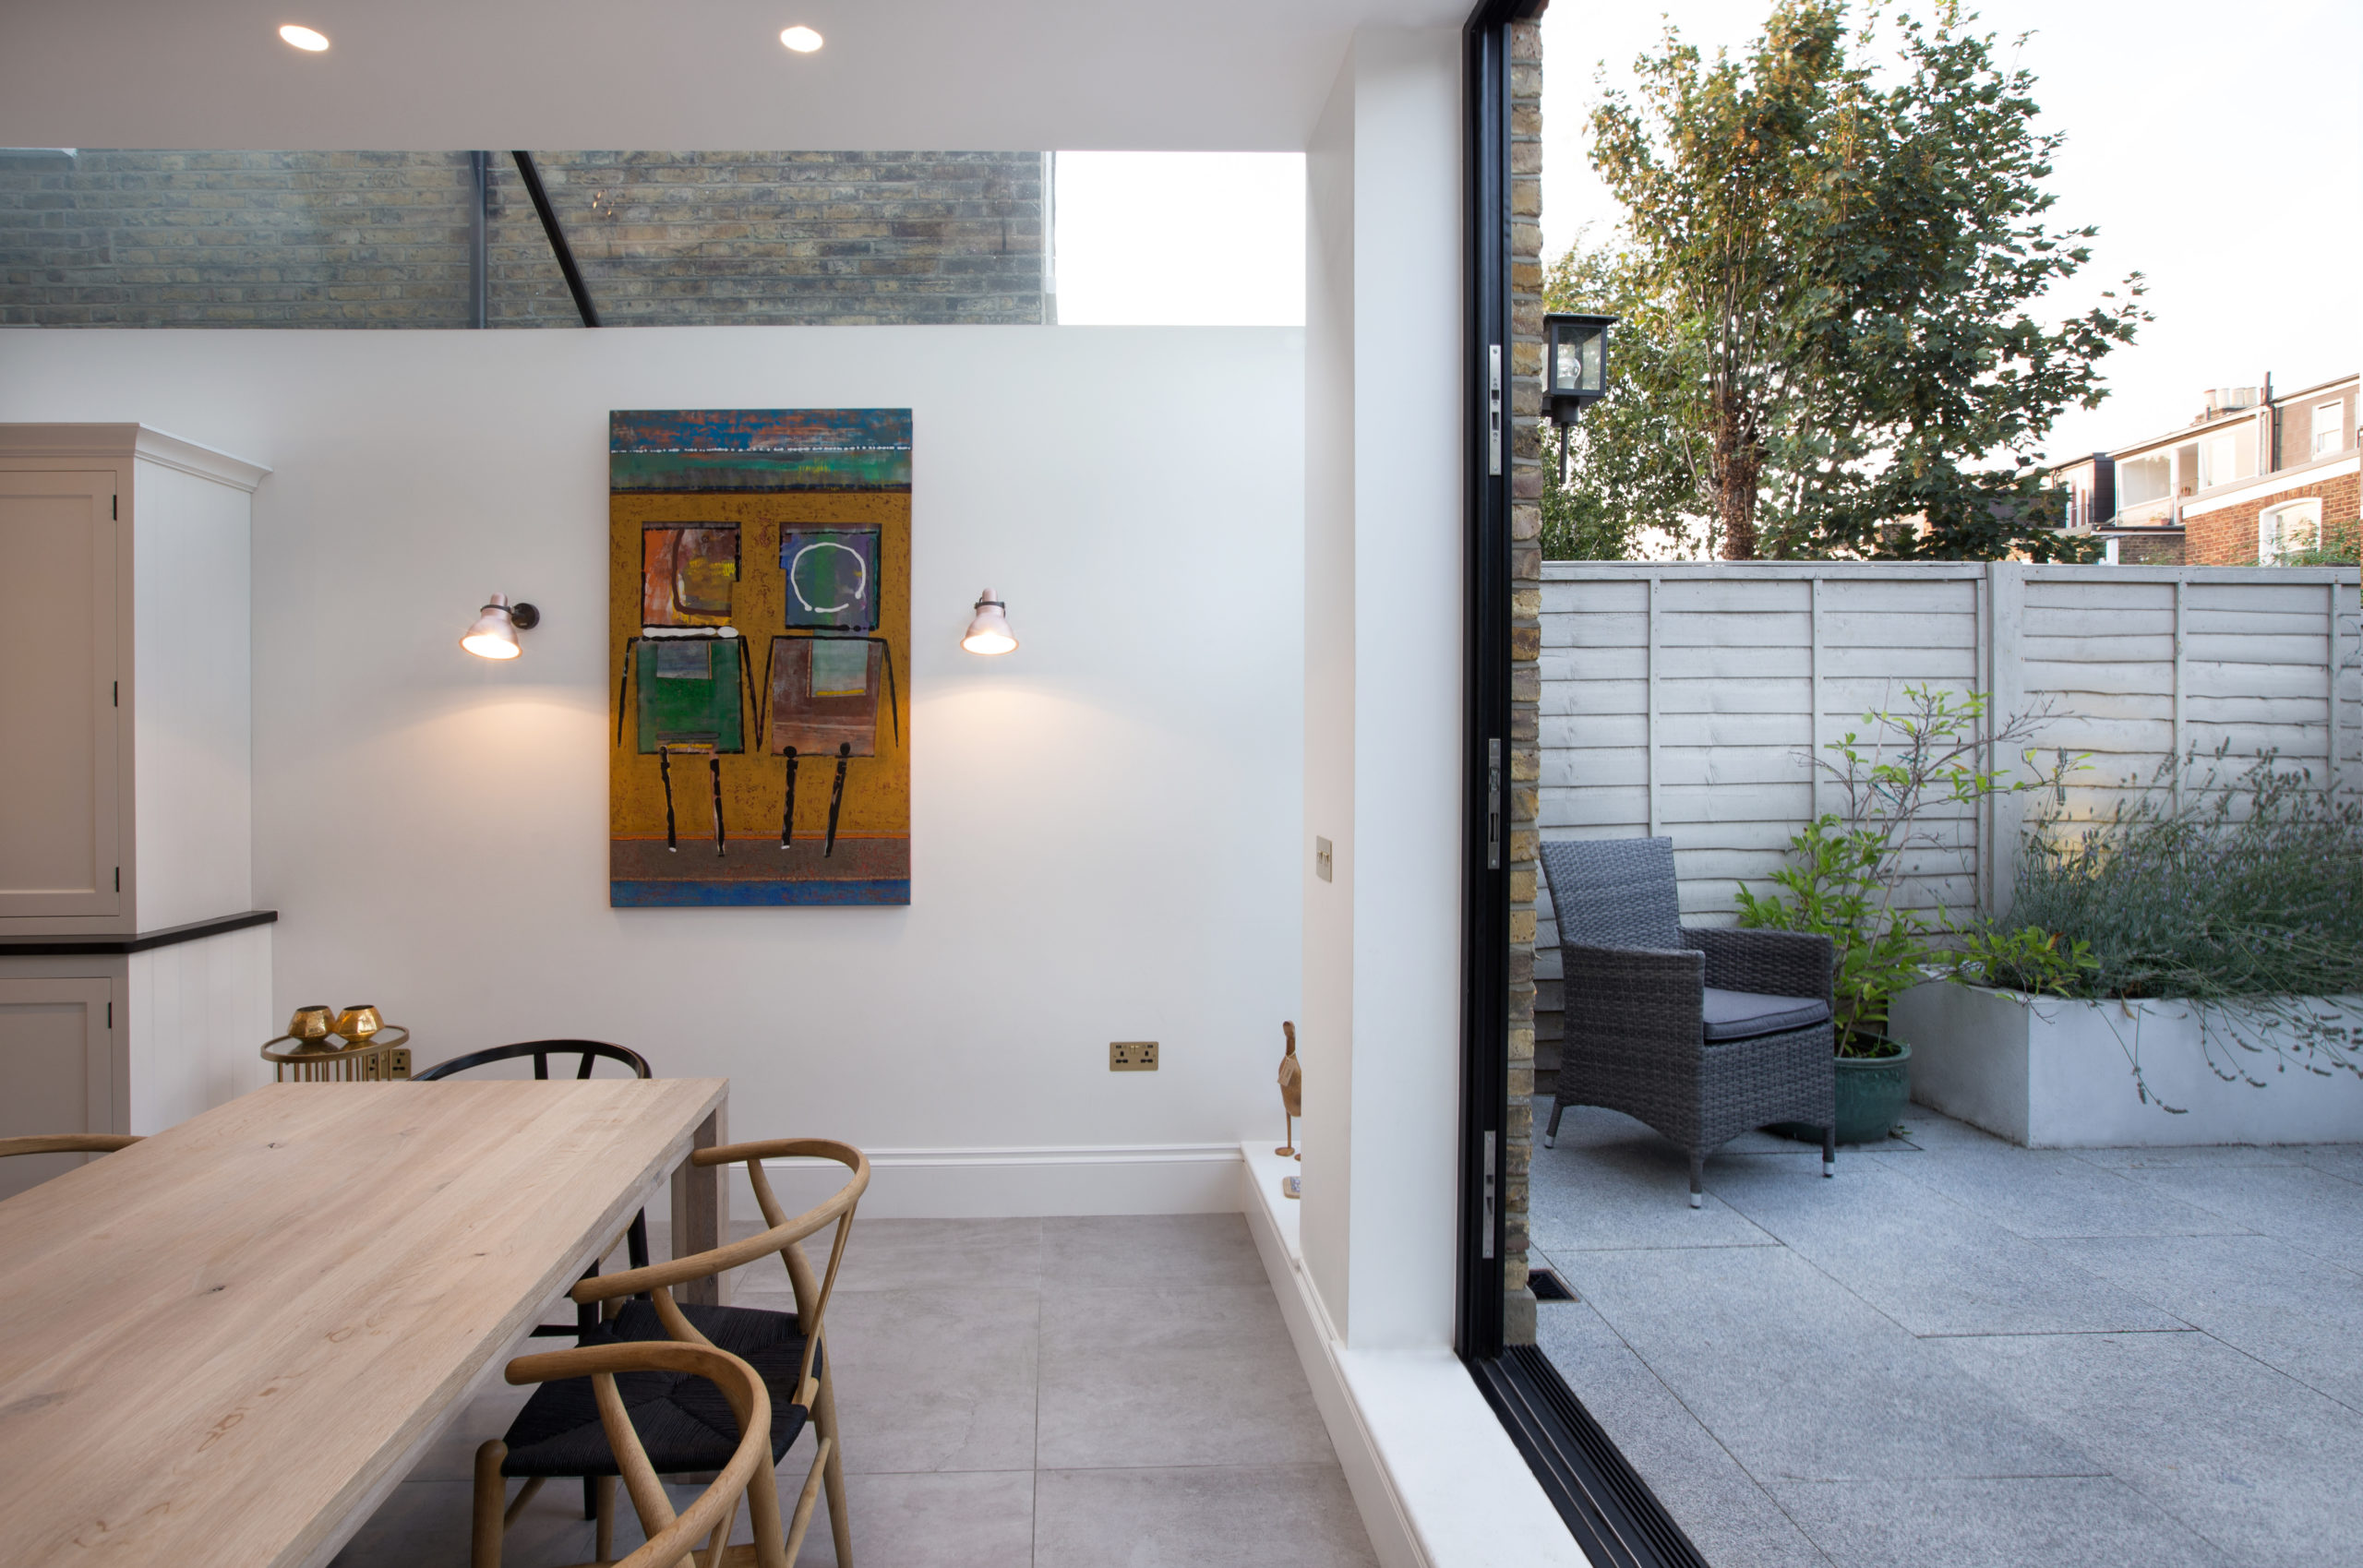 Why Consider An Extension To Your Home?